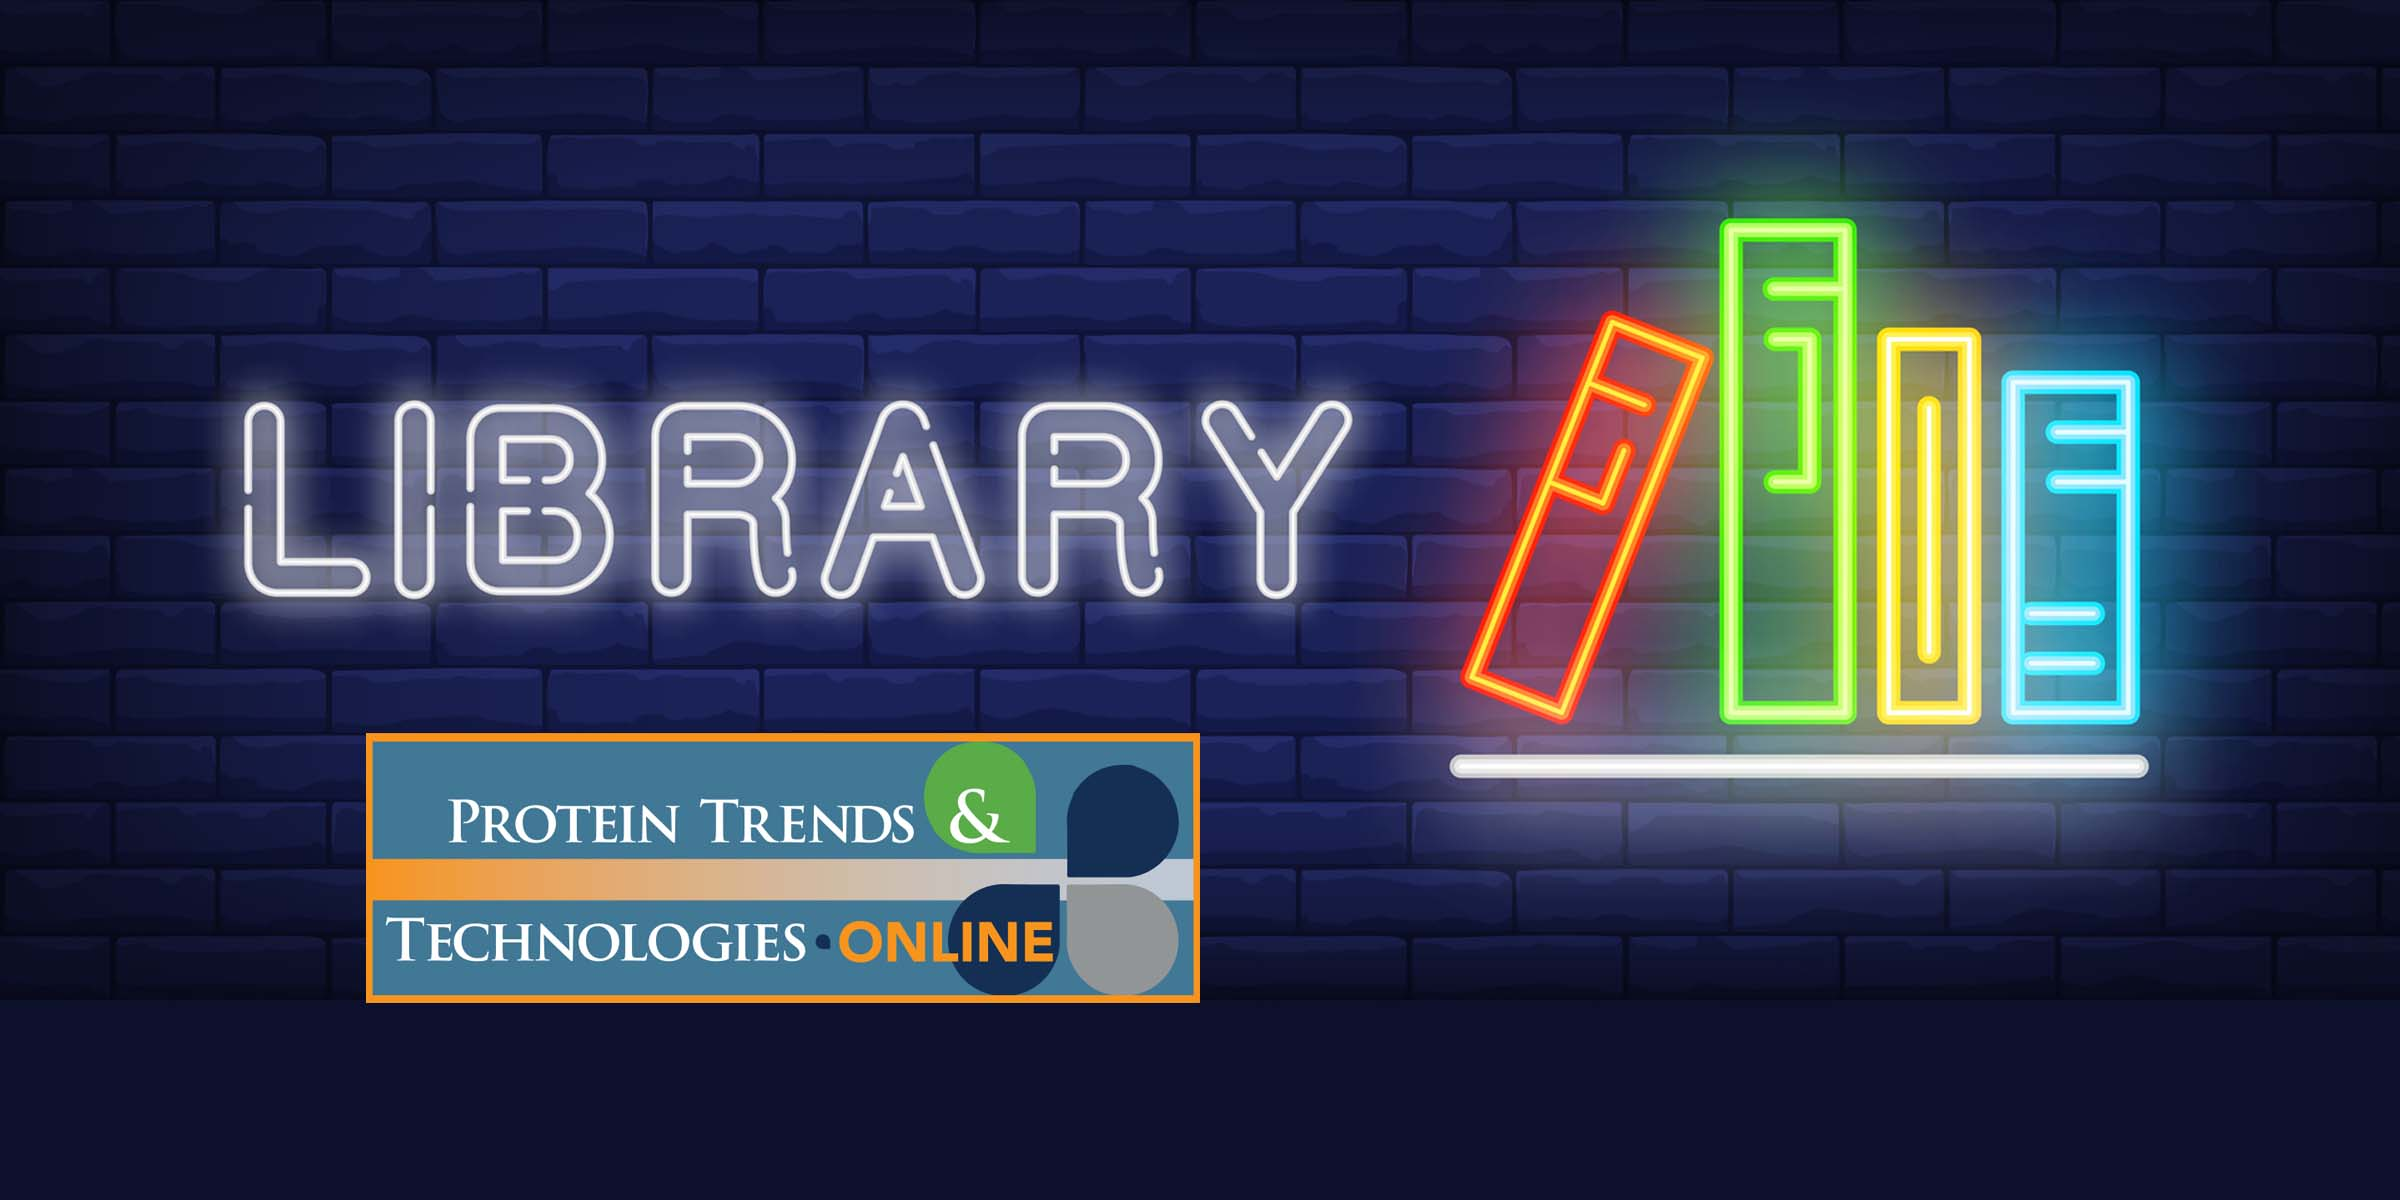 Protein Trends & Technologies Library